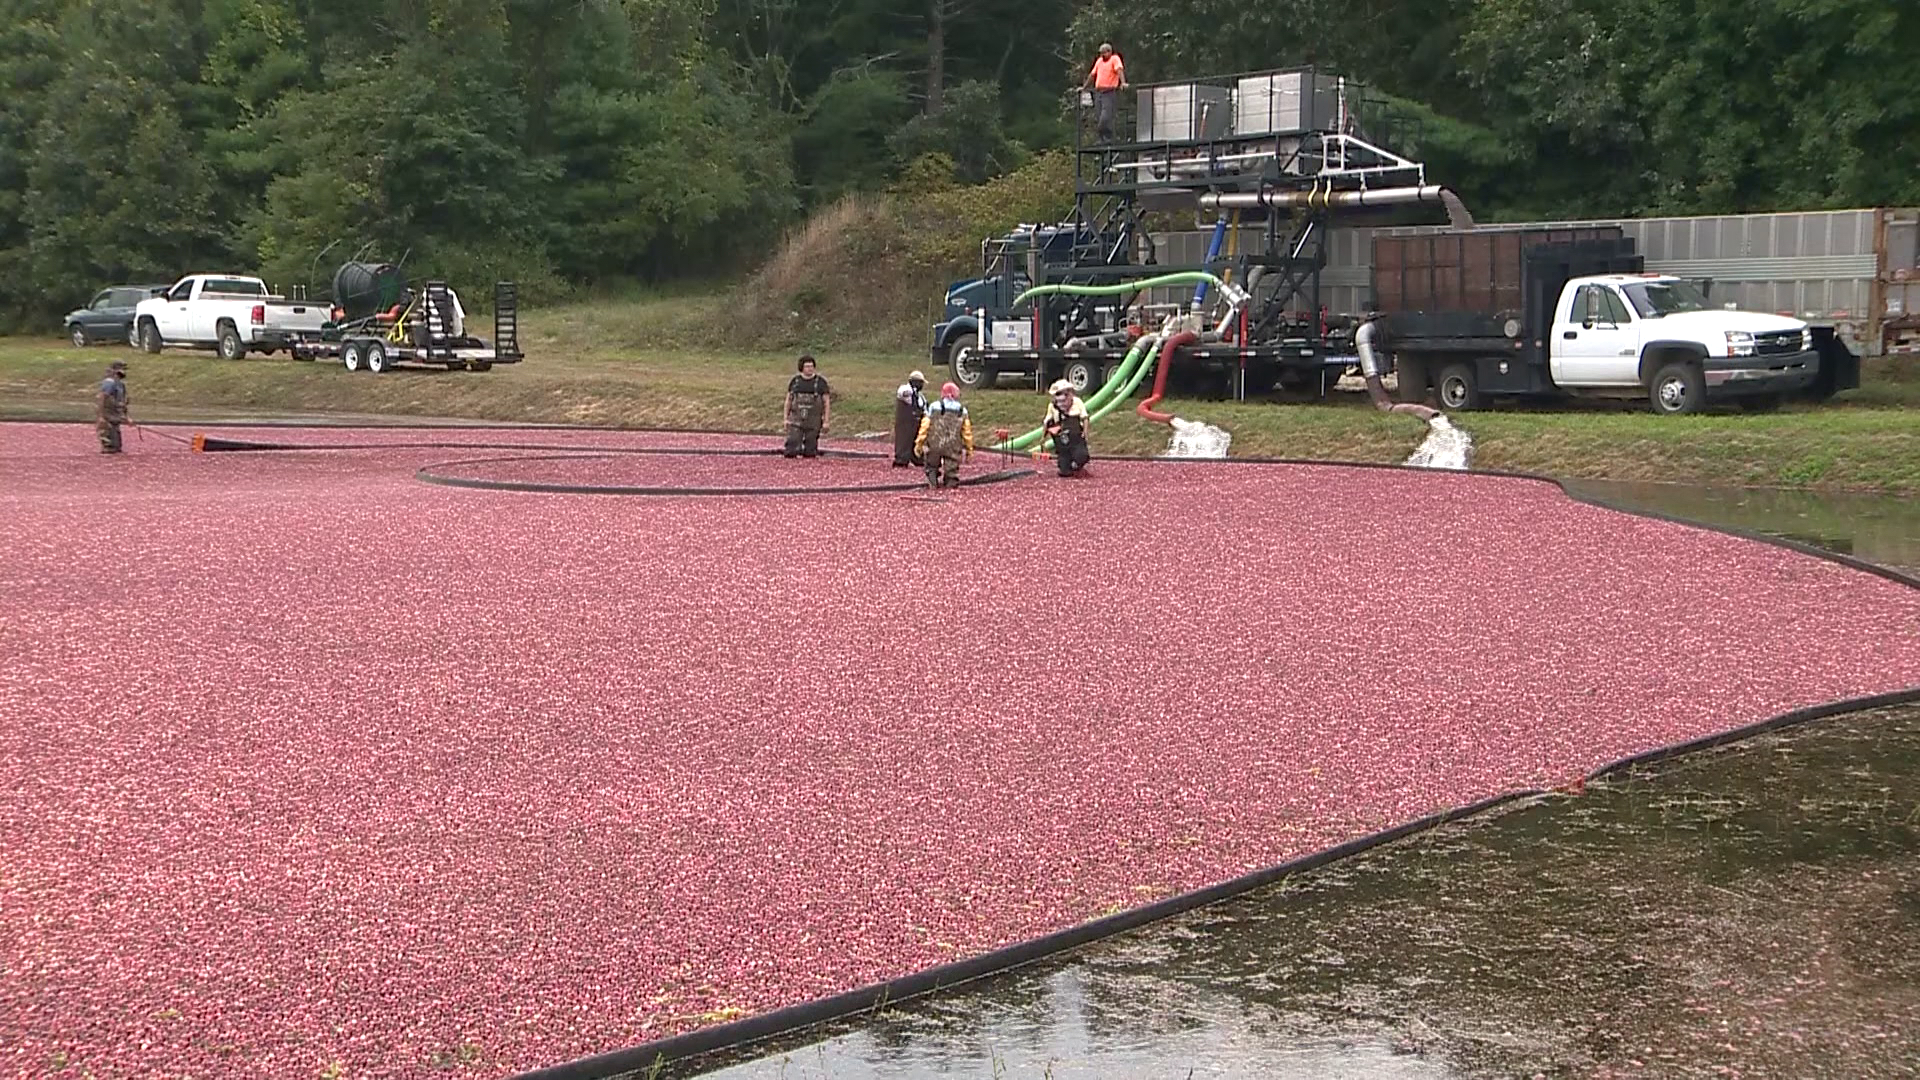 Drought conditions pose tough choices for cranberry growers